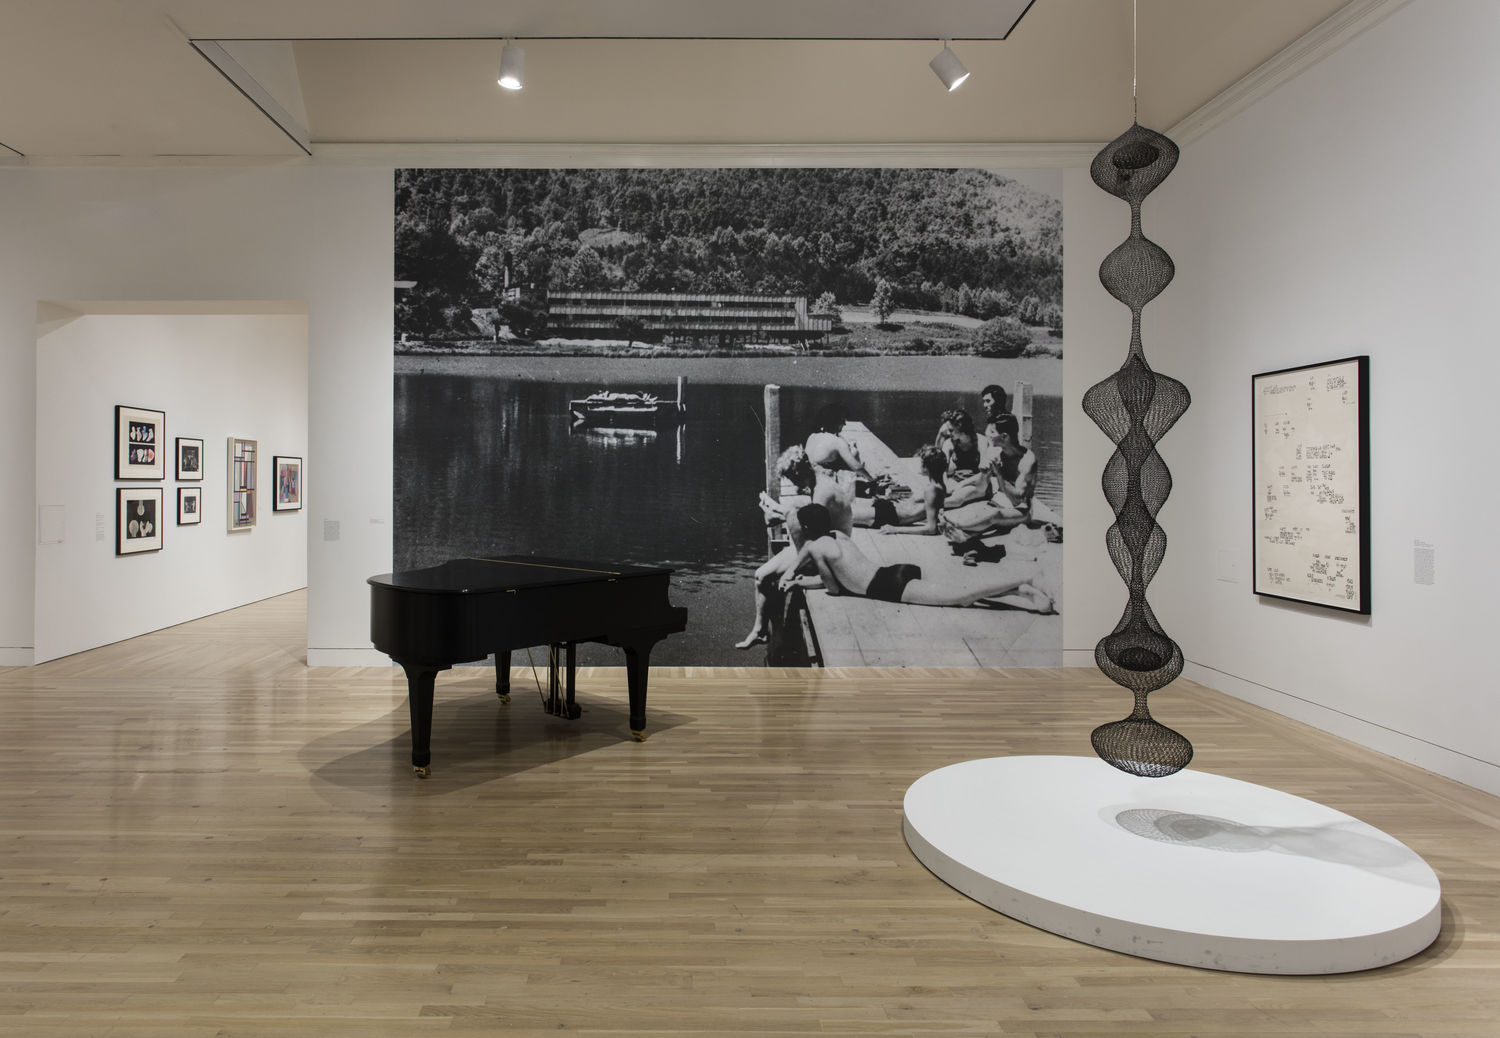 Leap Before You Look: Black Mountain College, 1933-1957, installation view, Hammer Museum, Los Angeles, February 21 – May 15, 2016. Photo: Brian Forrest.